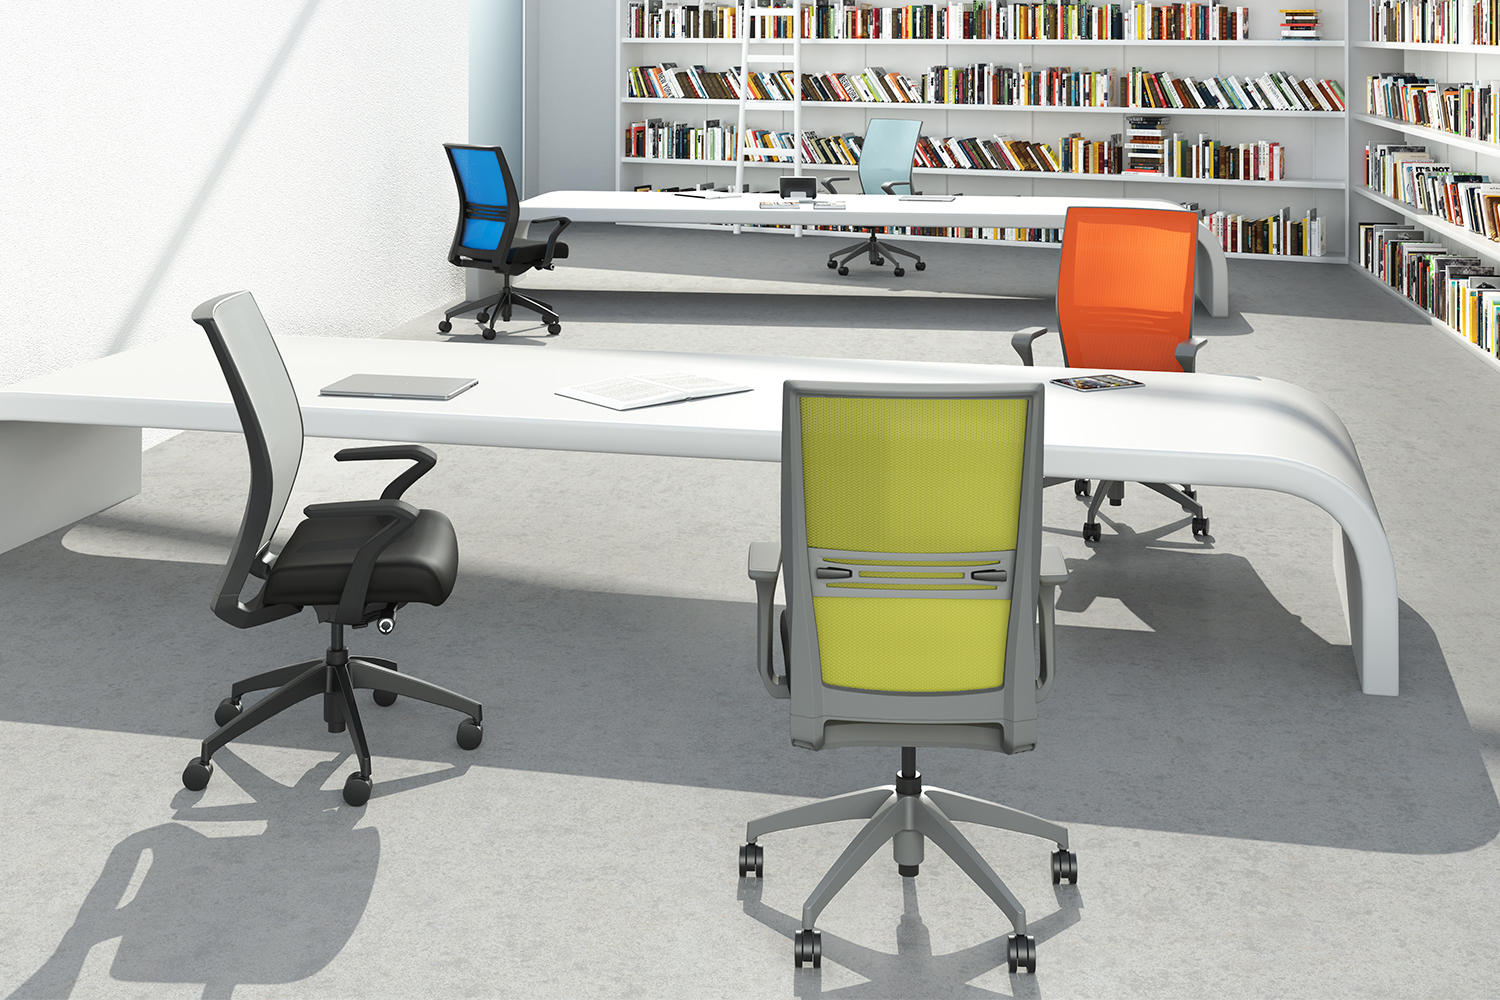 Miraculous Amplify Office Chairs From Sitonit Seating Architonic Beatyapartments Chair Design Images Beatyapartmentscom